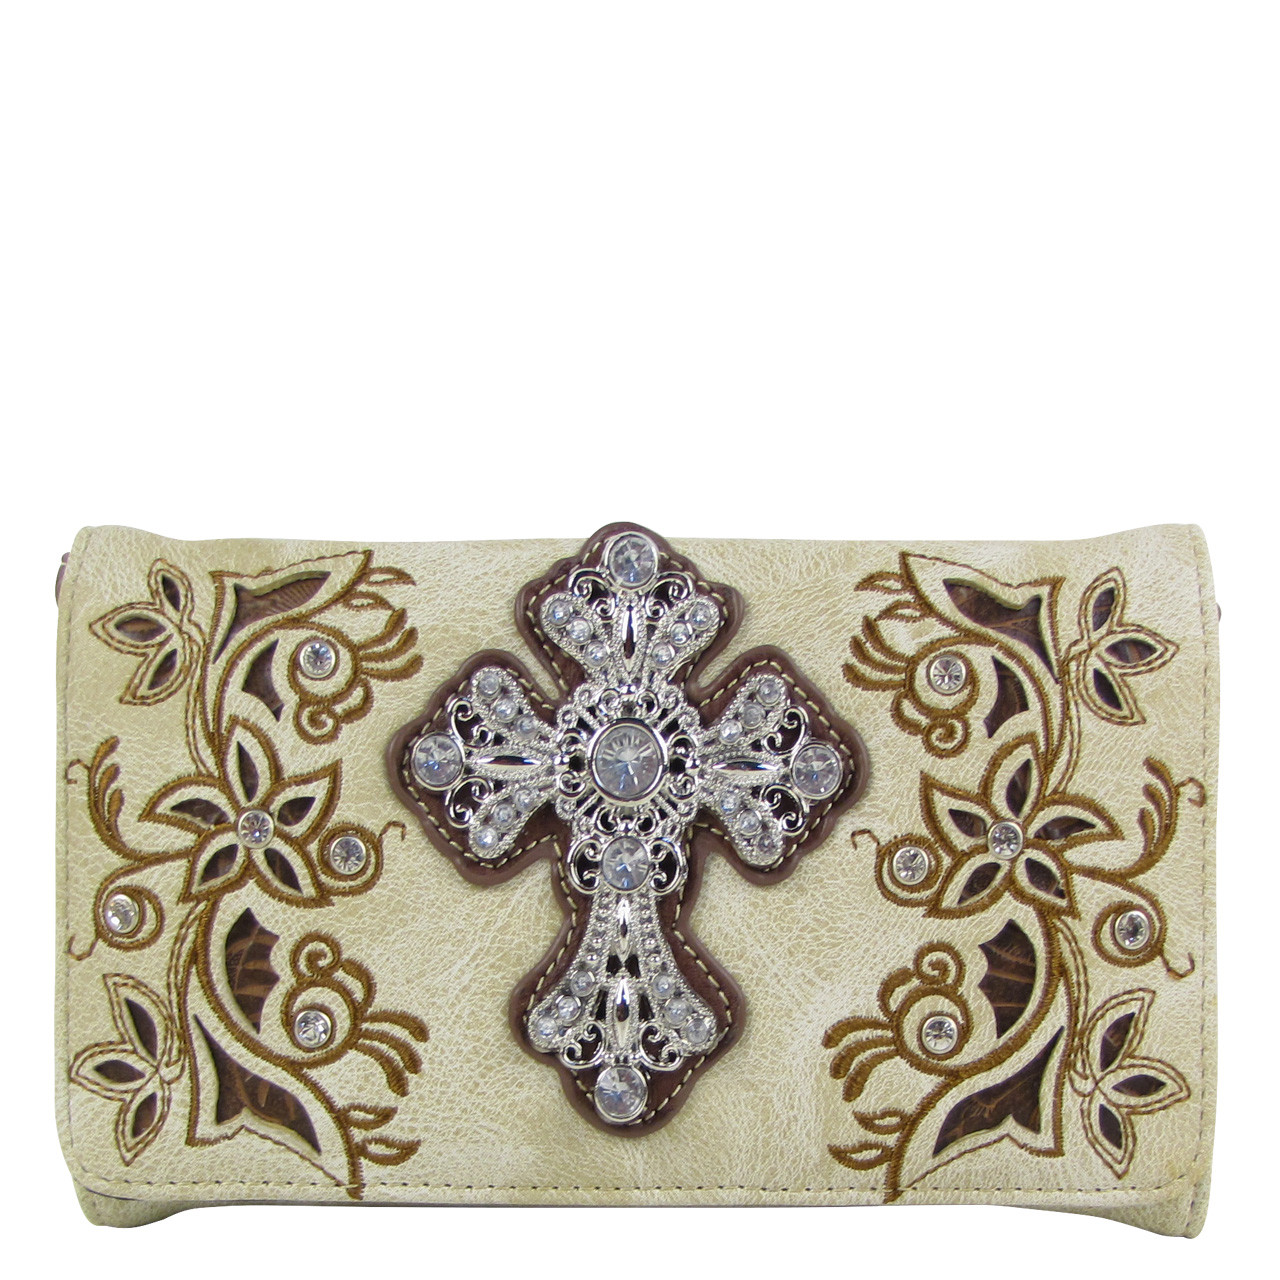 BEIGE RHINESTONE FLOWER CROSS LOOK CLUTCH TRIFOLD WALLET CW1-0471BEI